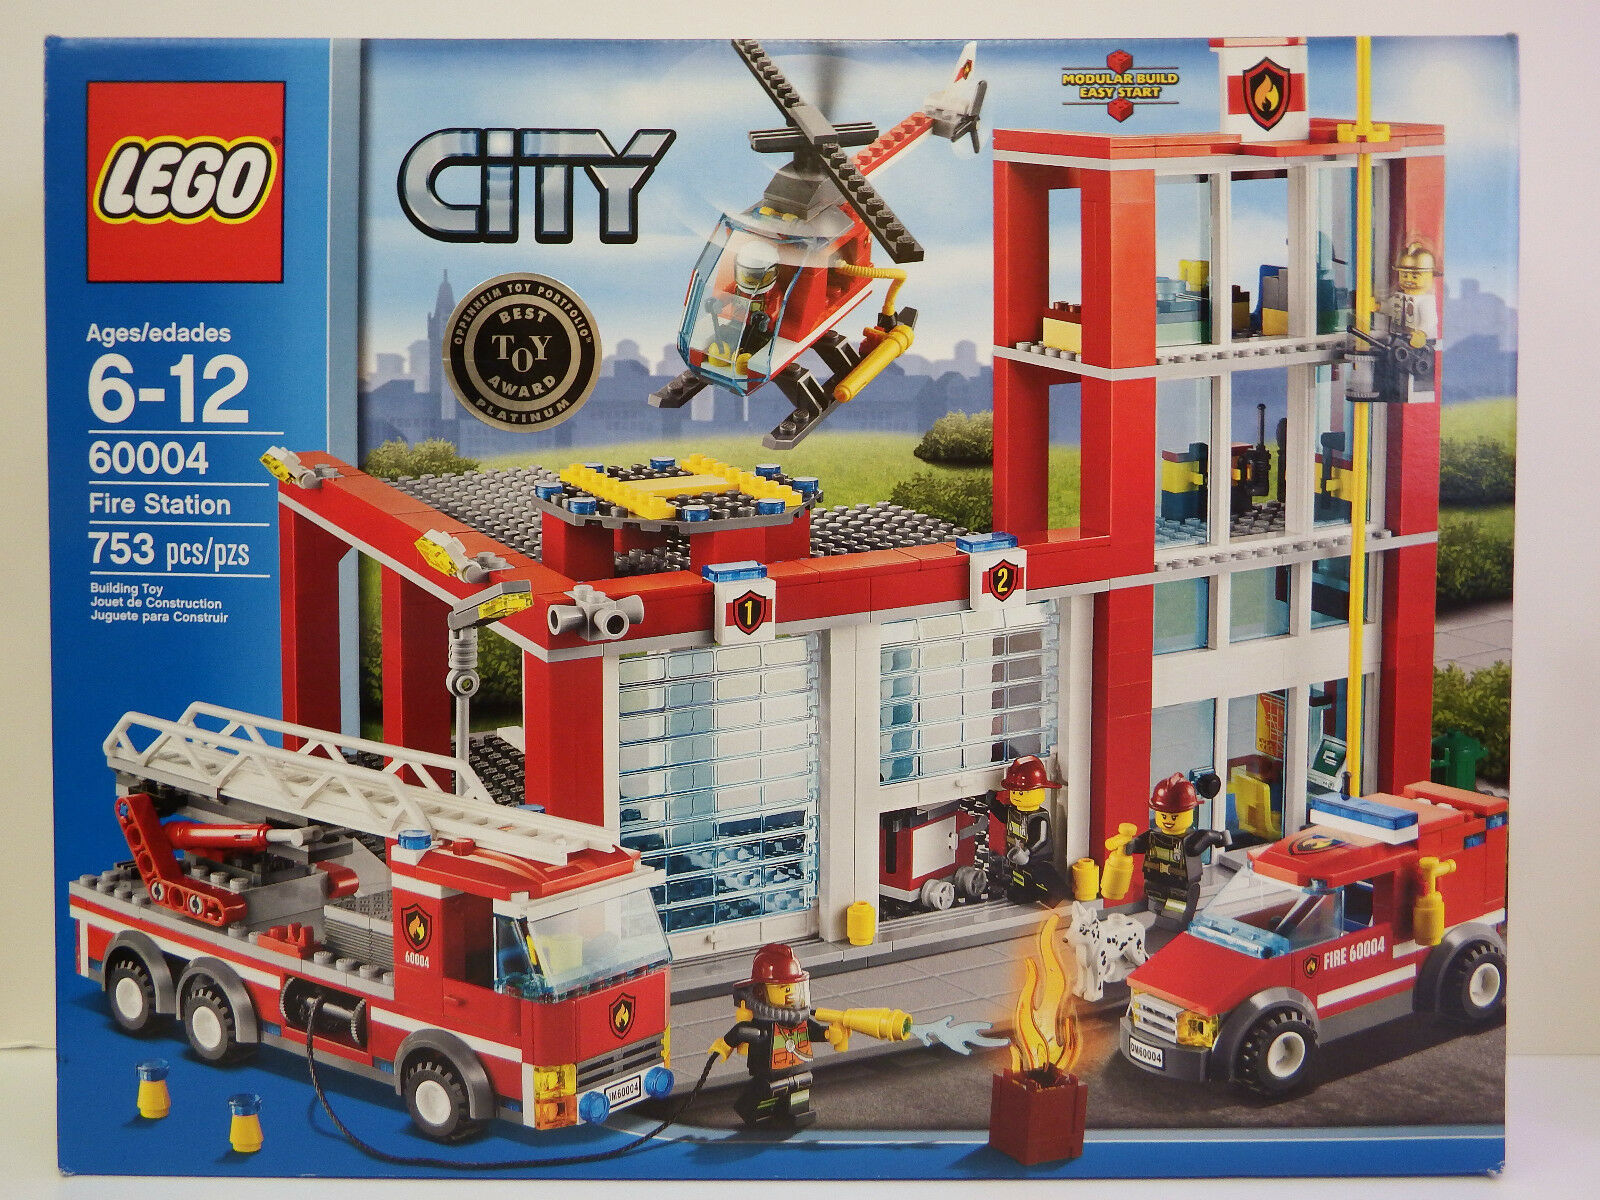 LEGO City - Model    60004 - FIRE STATION - 753 piece set - Ages 6-12 years 09f383